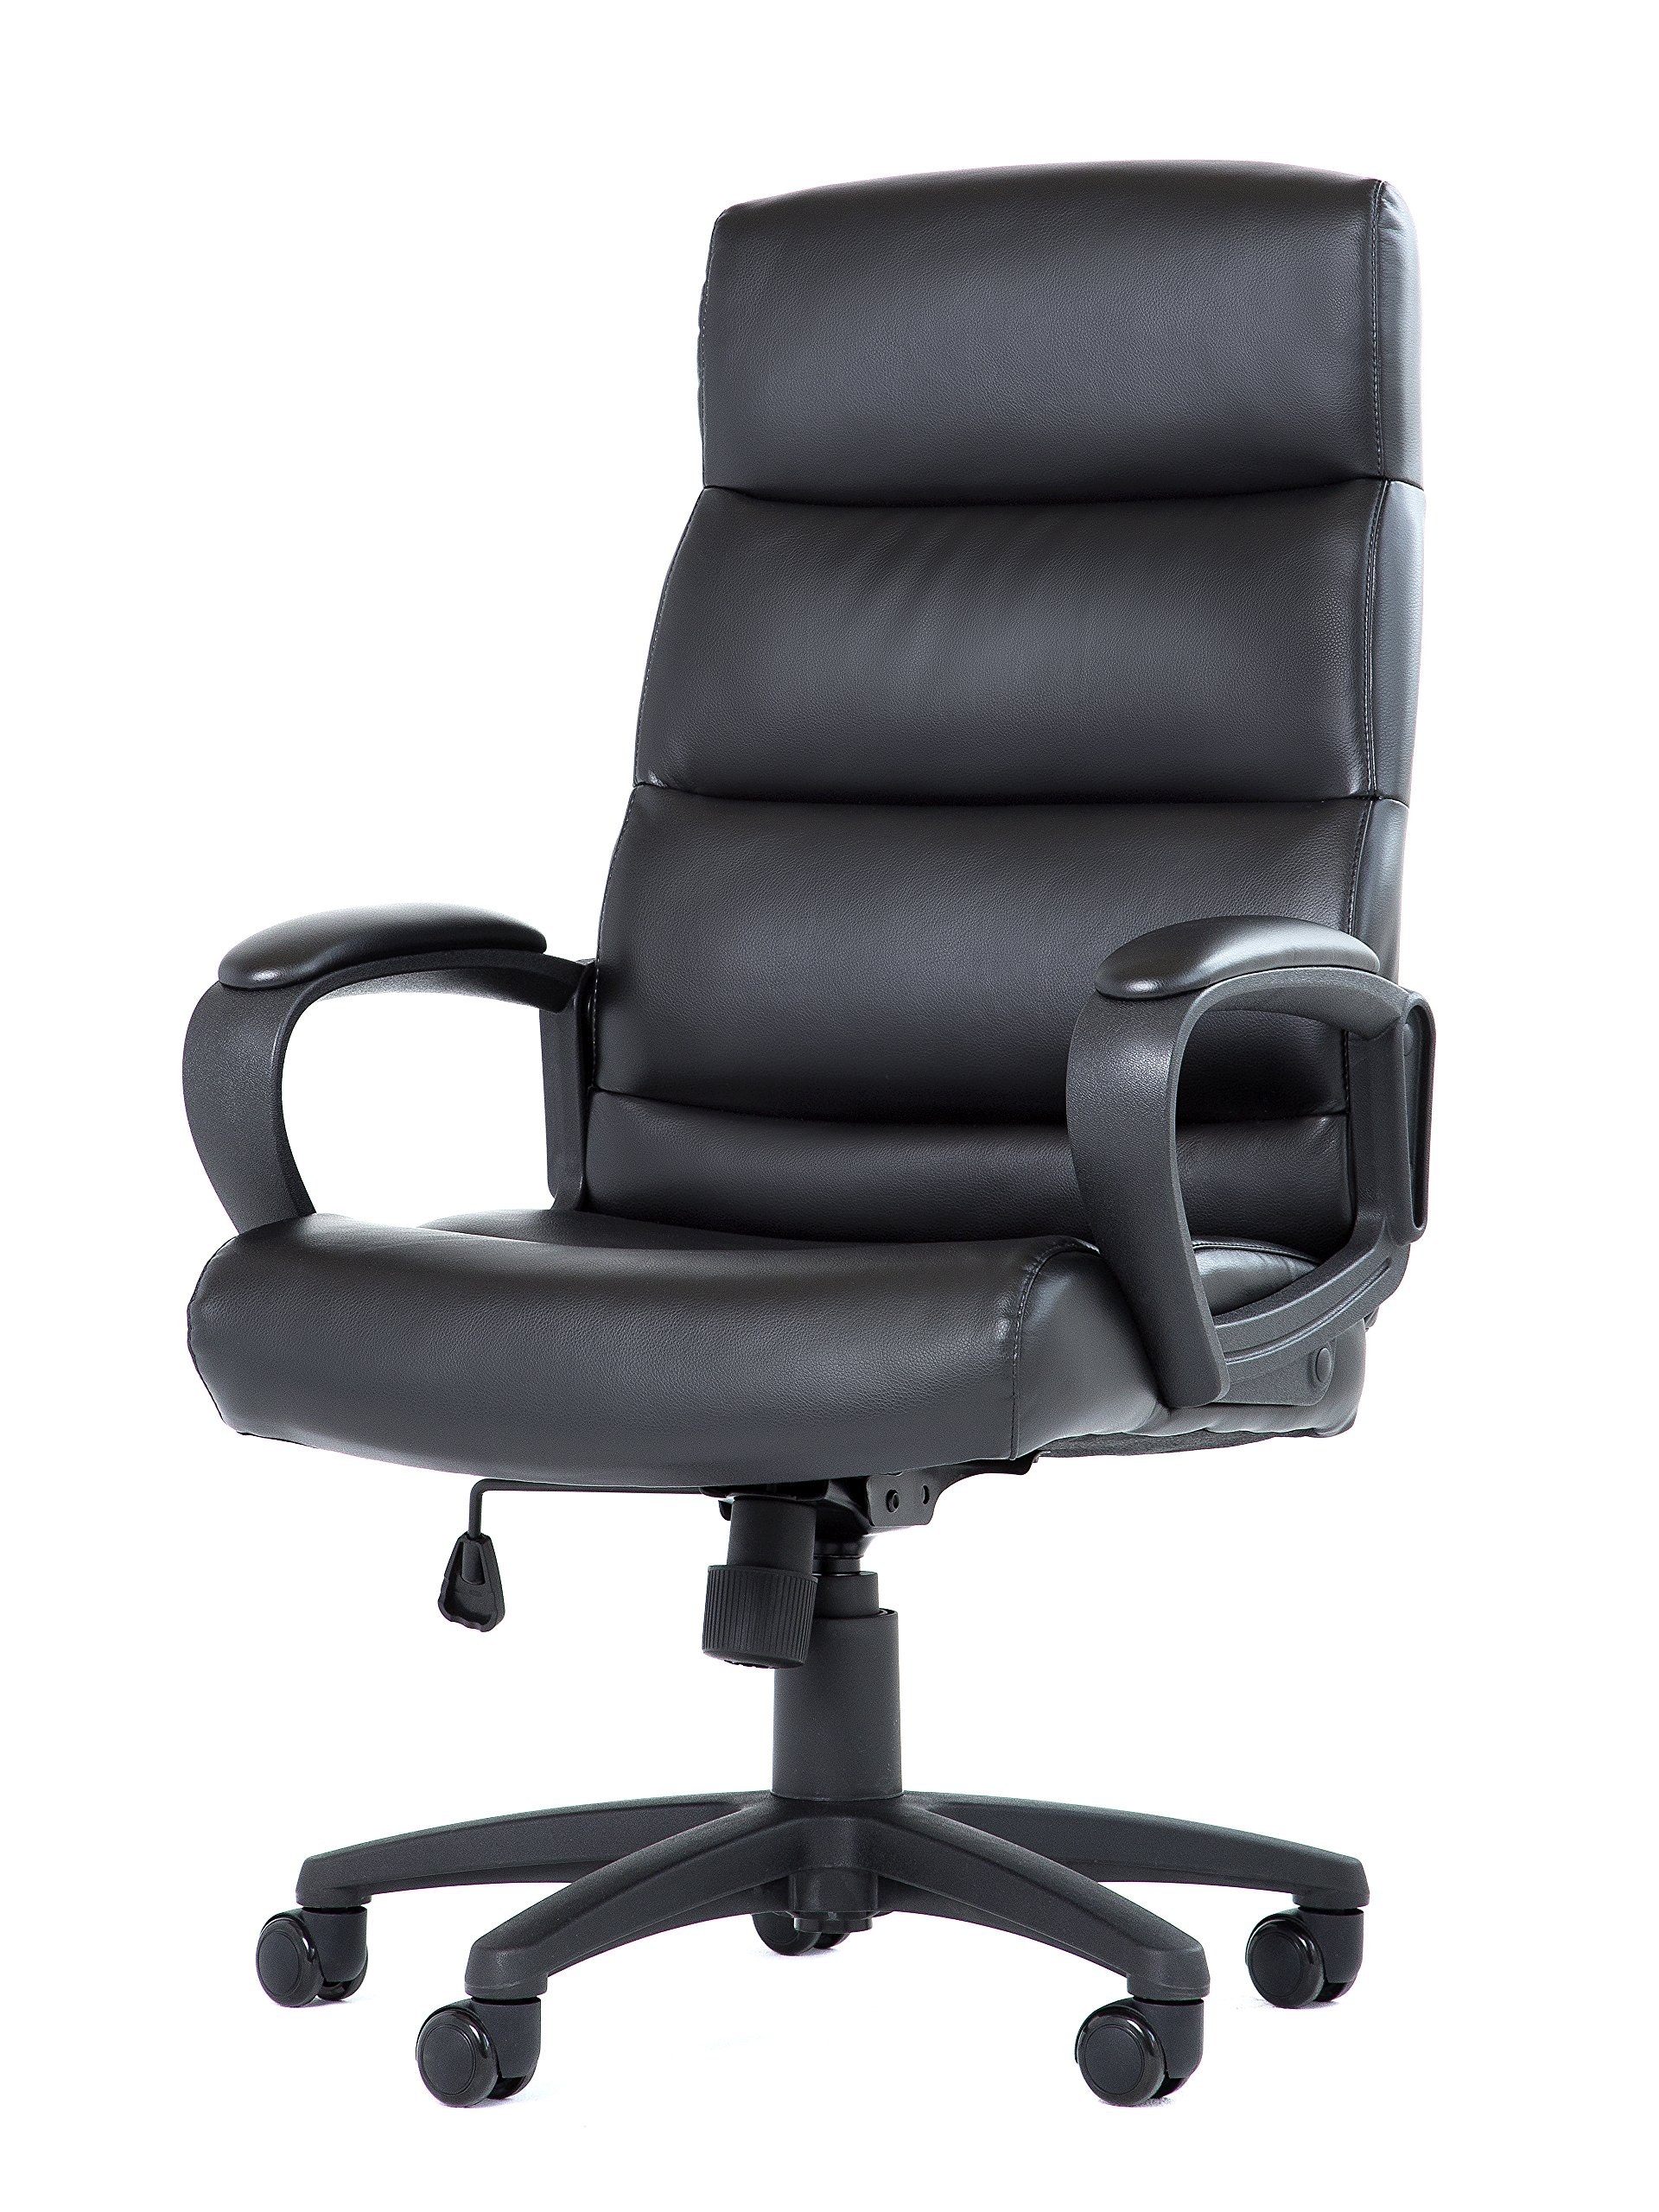 Most Ergonomic Office Chair Cheap Most Ergonomic Office Chair Find Most Ergonomic Office